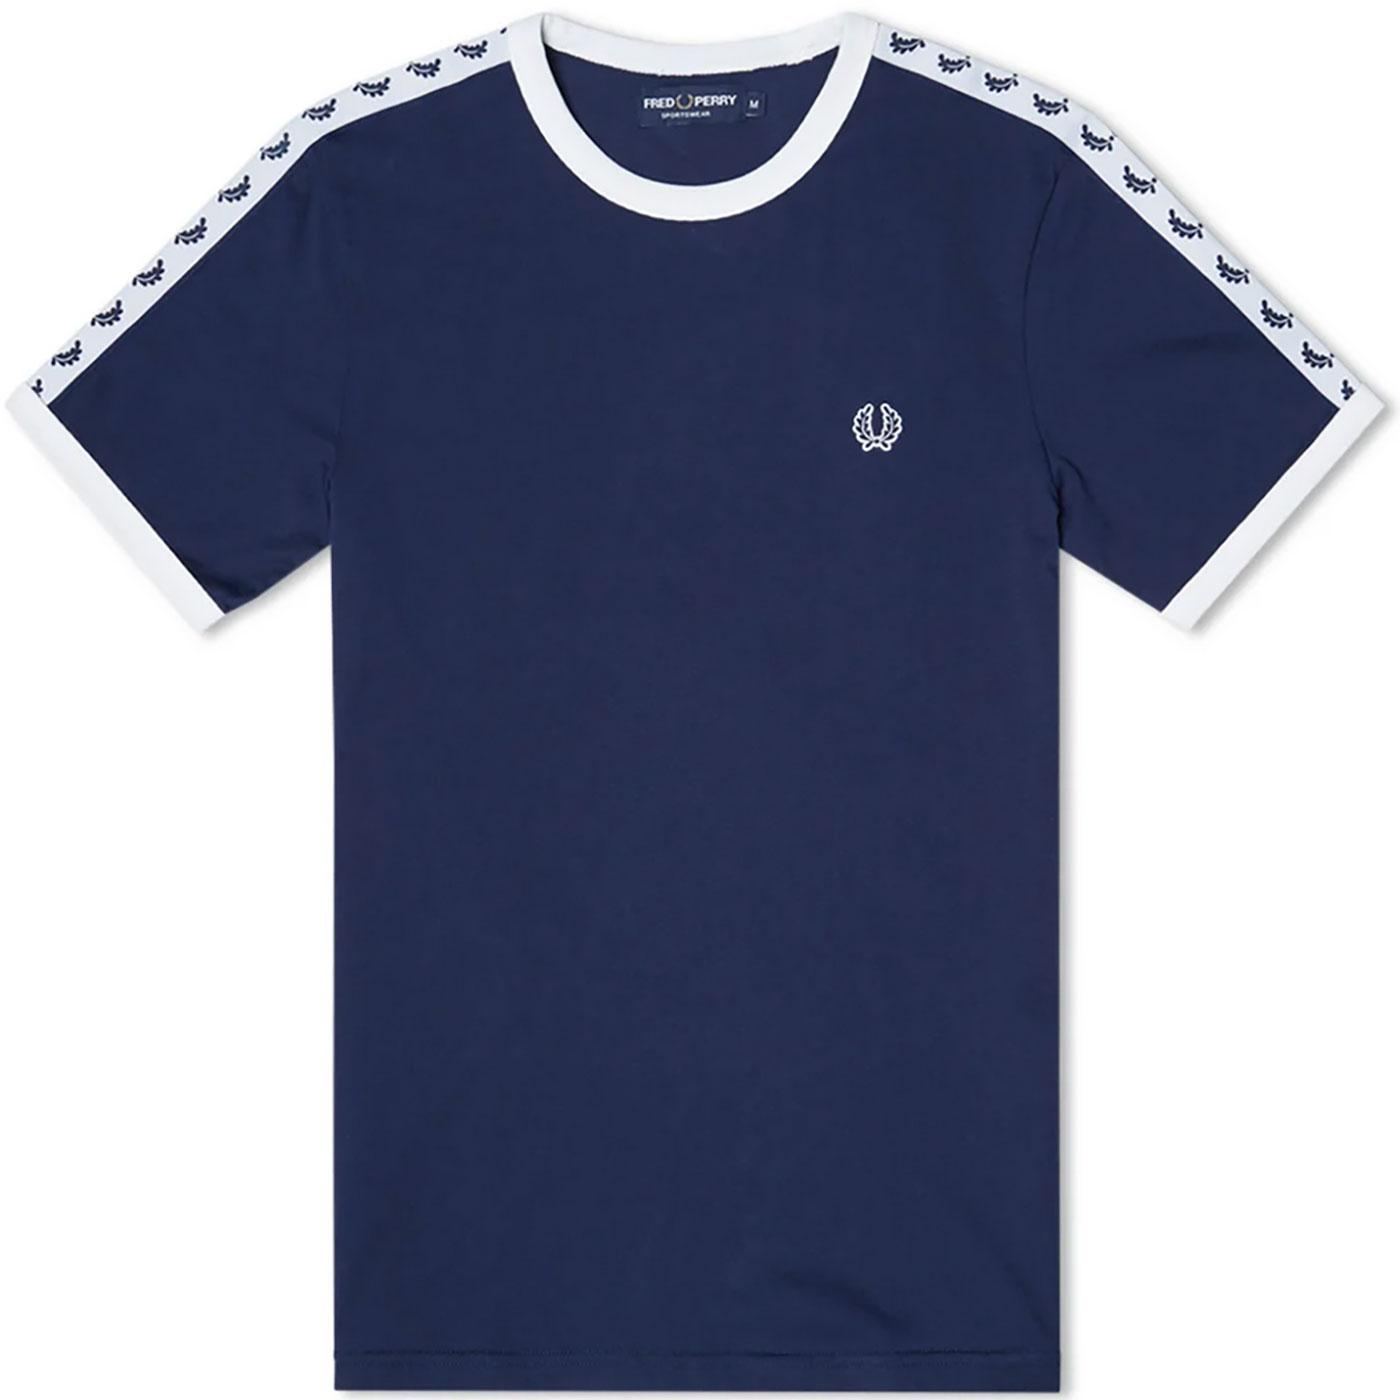 FRED PERRY M6347 Taped Sleeve Ringer t-Shirt BG